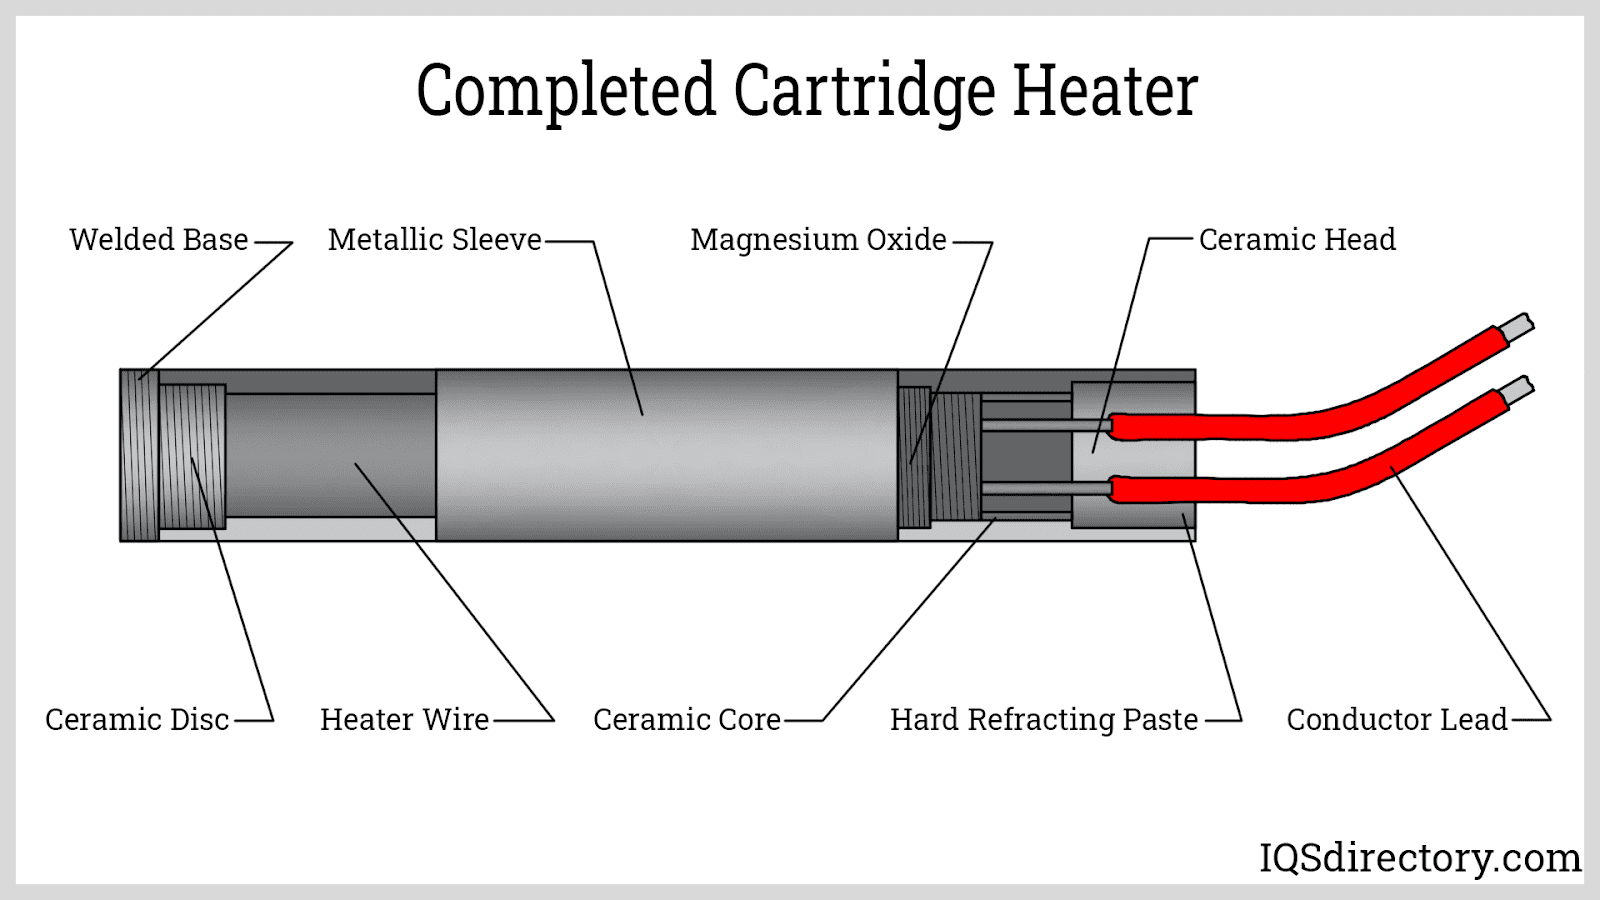 Completed Cartridge Heater